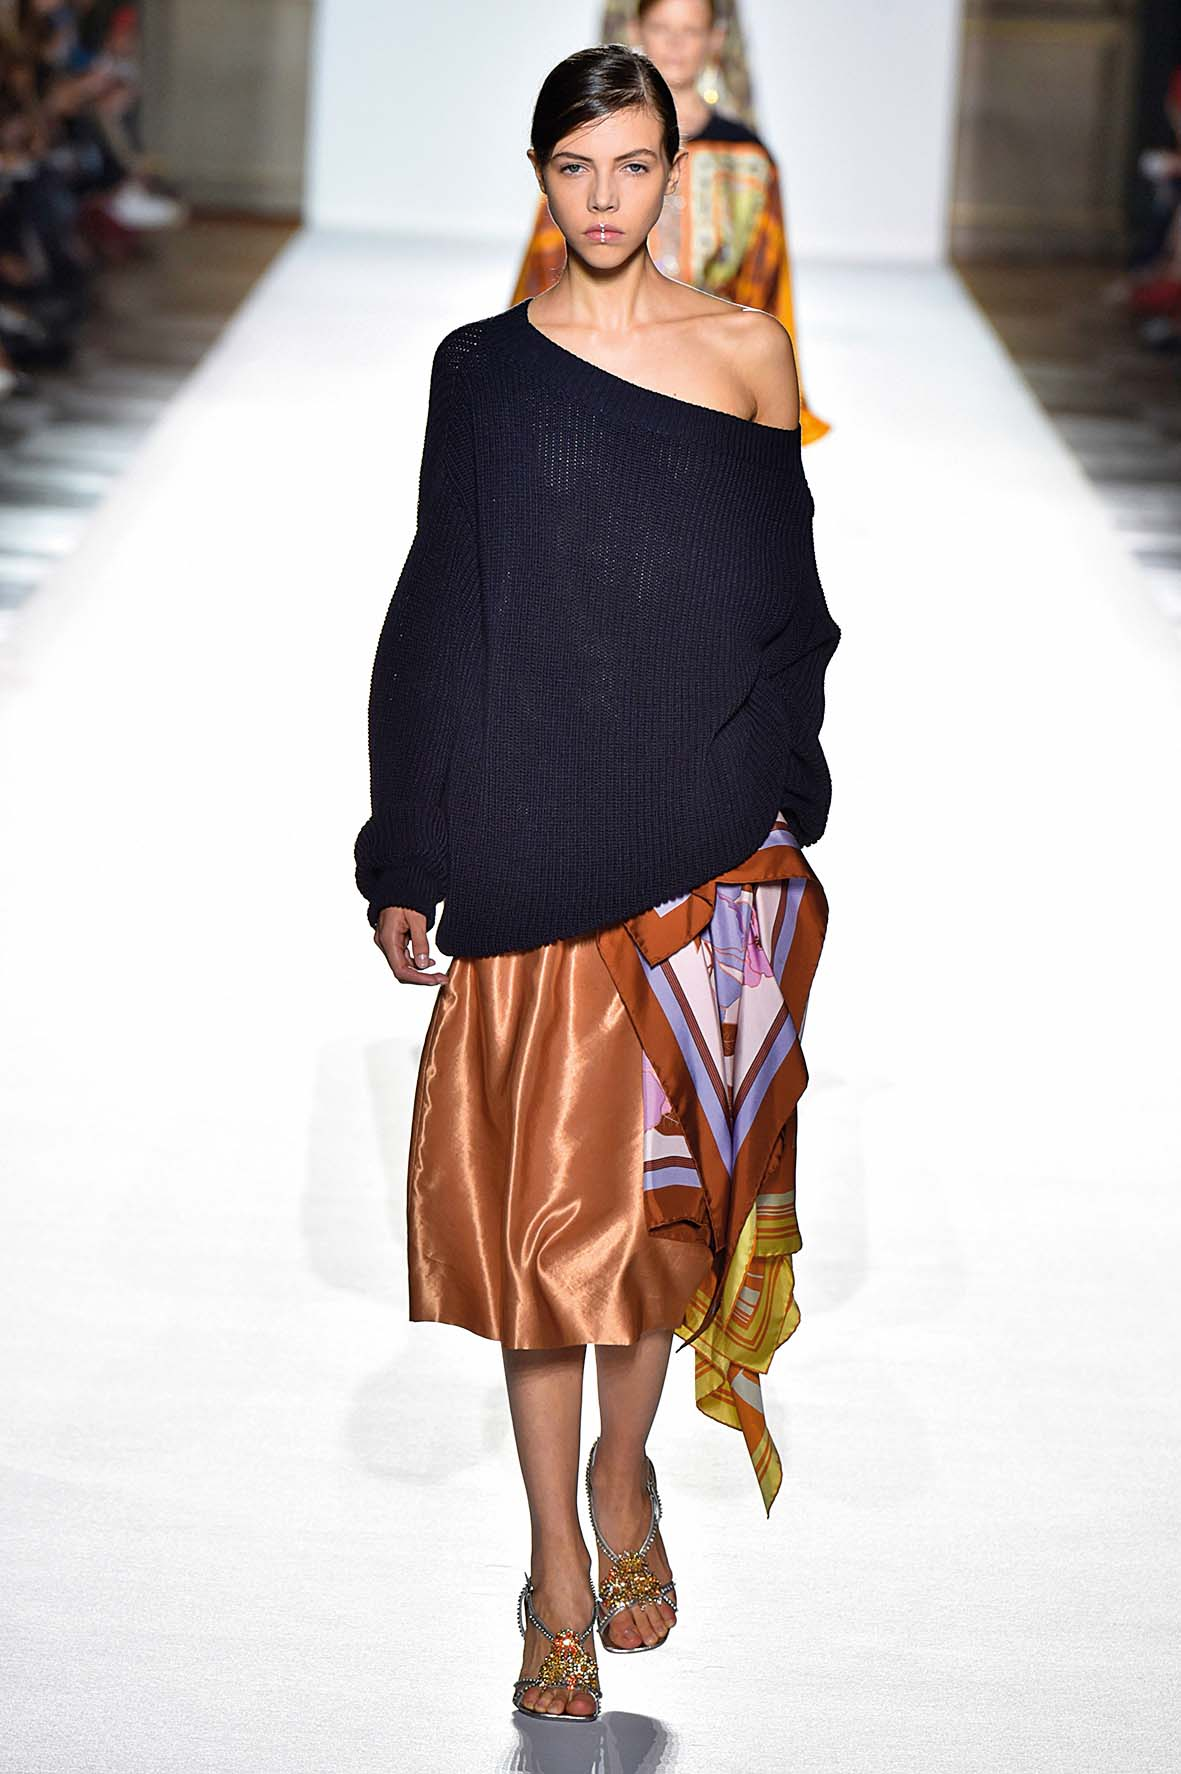 PARIS, FRANCE - SEPTEMBER 27:  A model walks the runway at the Dries Van Noten   Spring Summer 2018 fashion show during Paris Fashion Week on September 27, 2017 in Paris, France.  (Photo by Catwalking/Getty Images)